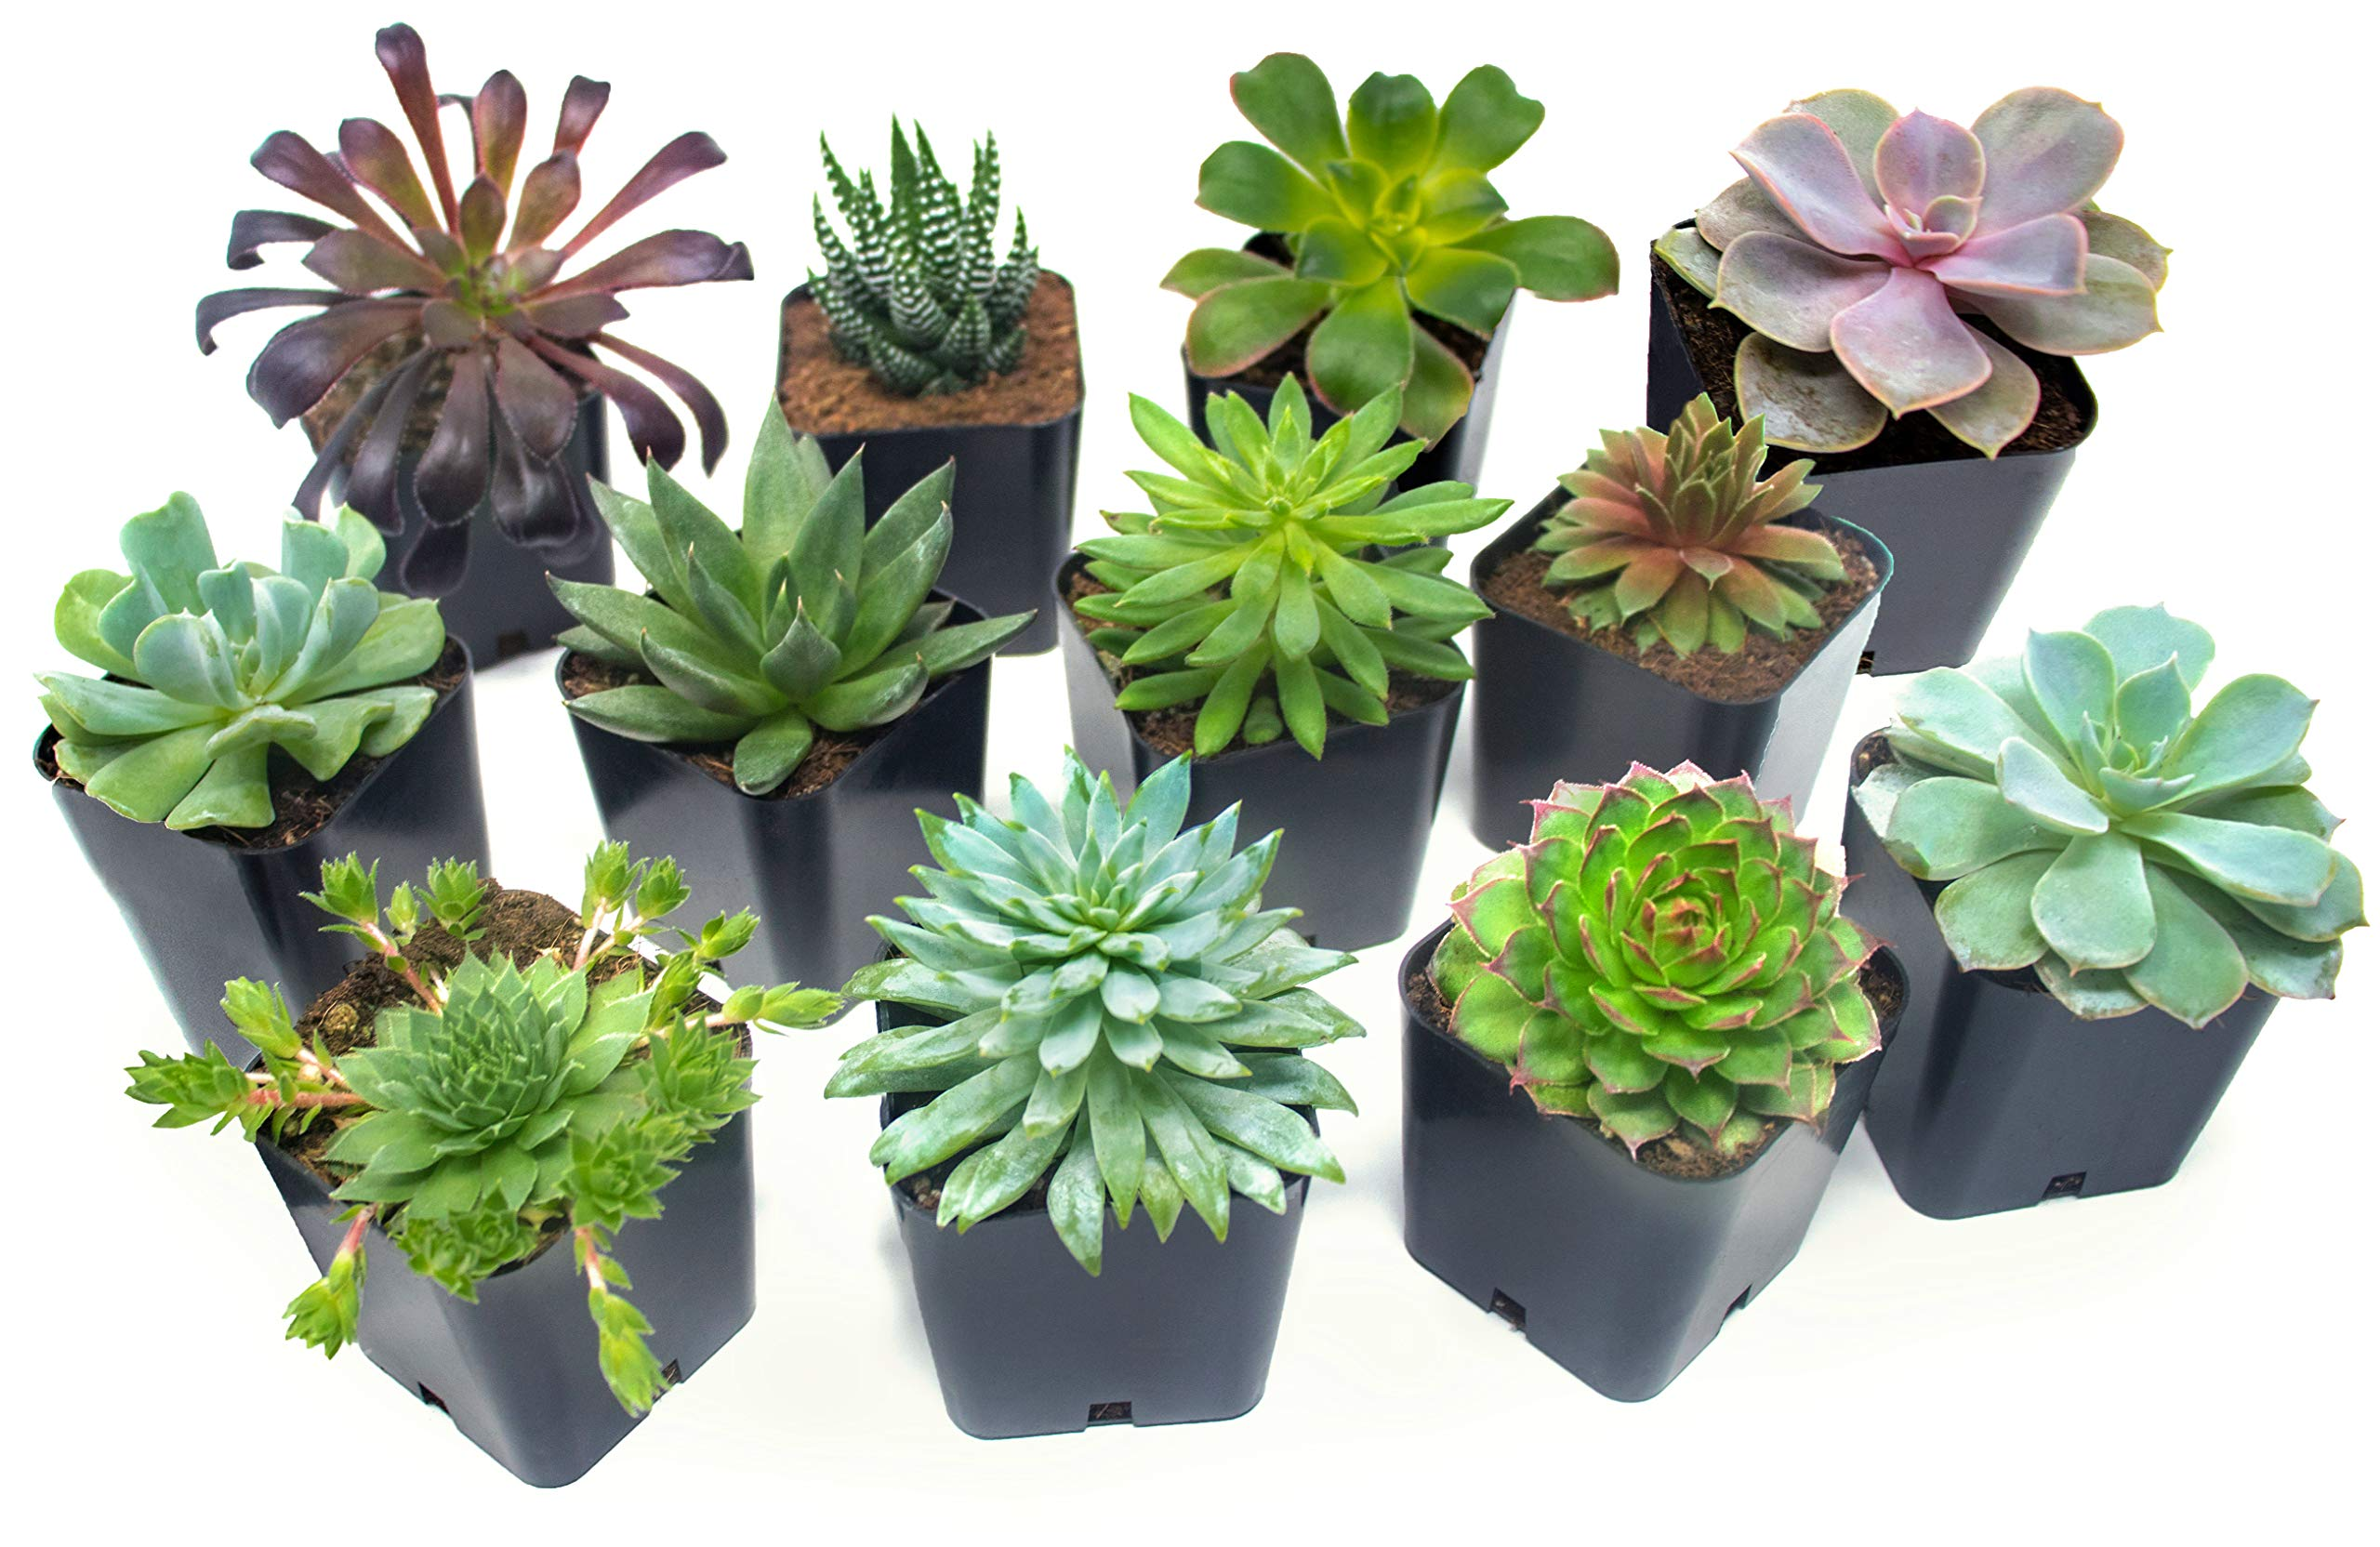 Succulent Plants (12 Pack) Fully Rooted in Planter Pots with Soil | Real Live Potted Succulents / Unique Indoor Cactus Decor by Plants for Pets